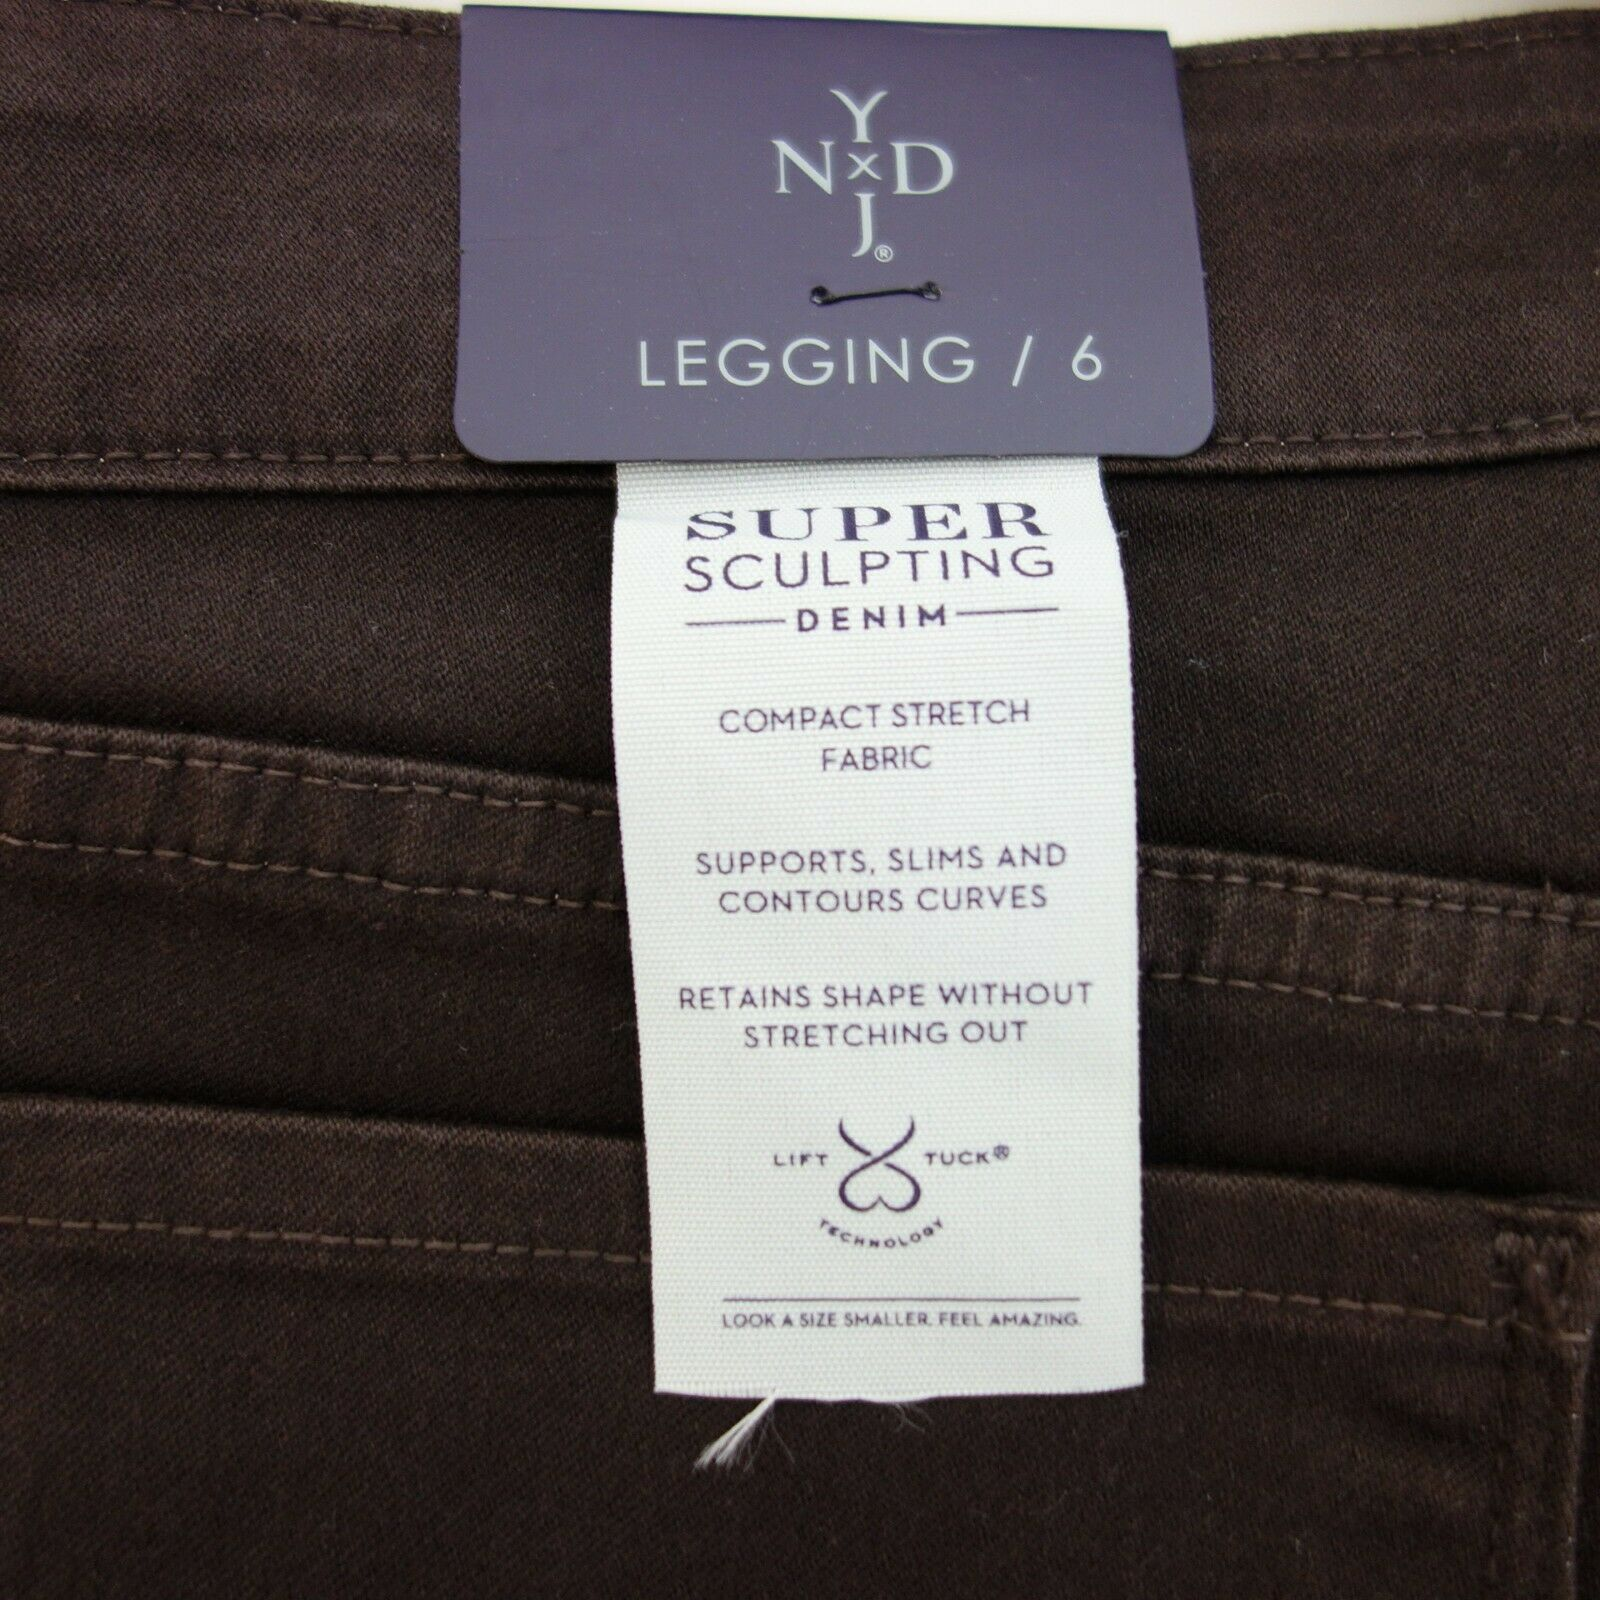 NYDJ Jeans Pantaloni Donna Alina Leggings Leggings Leggings Tg. 6 36 Marronee Super  Modellamento 700219